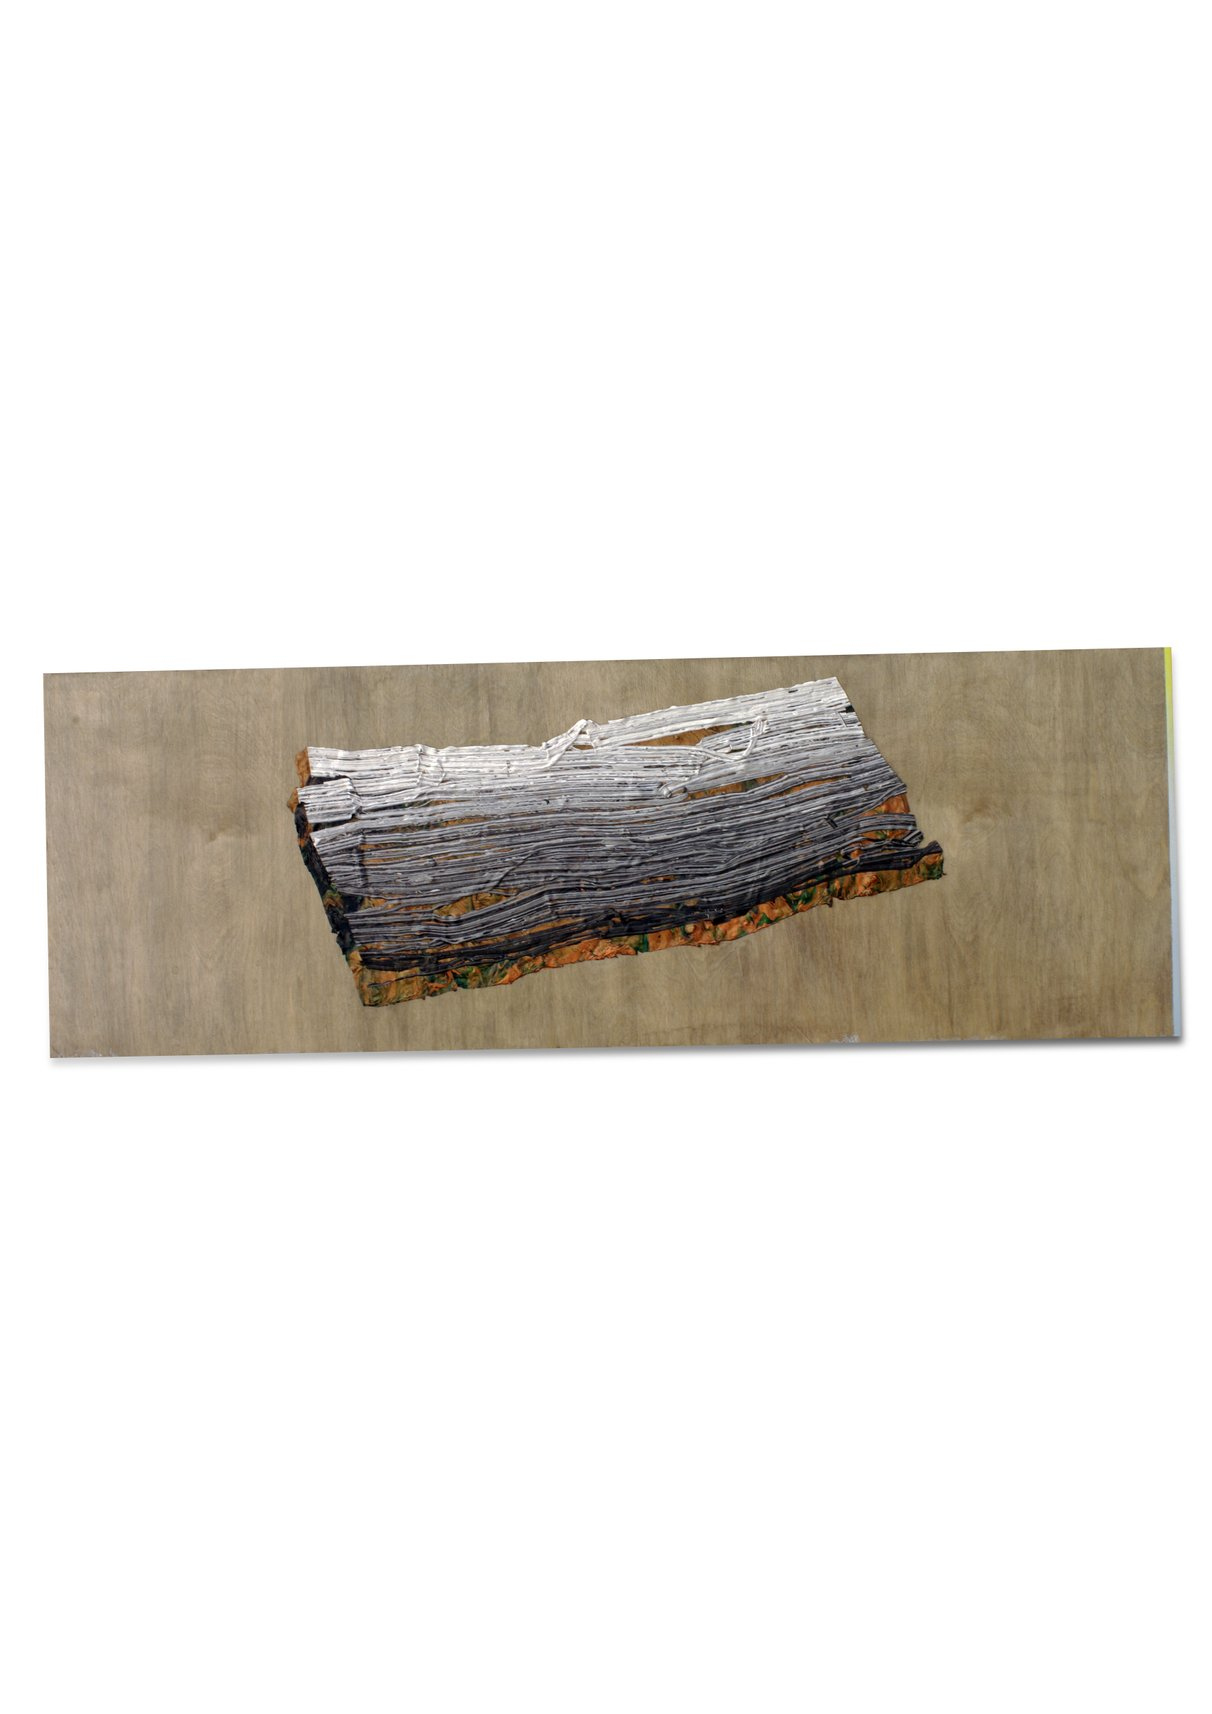 Bark ; 2021, 40x110cm , Glup, shellac spray on birch